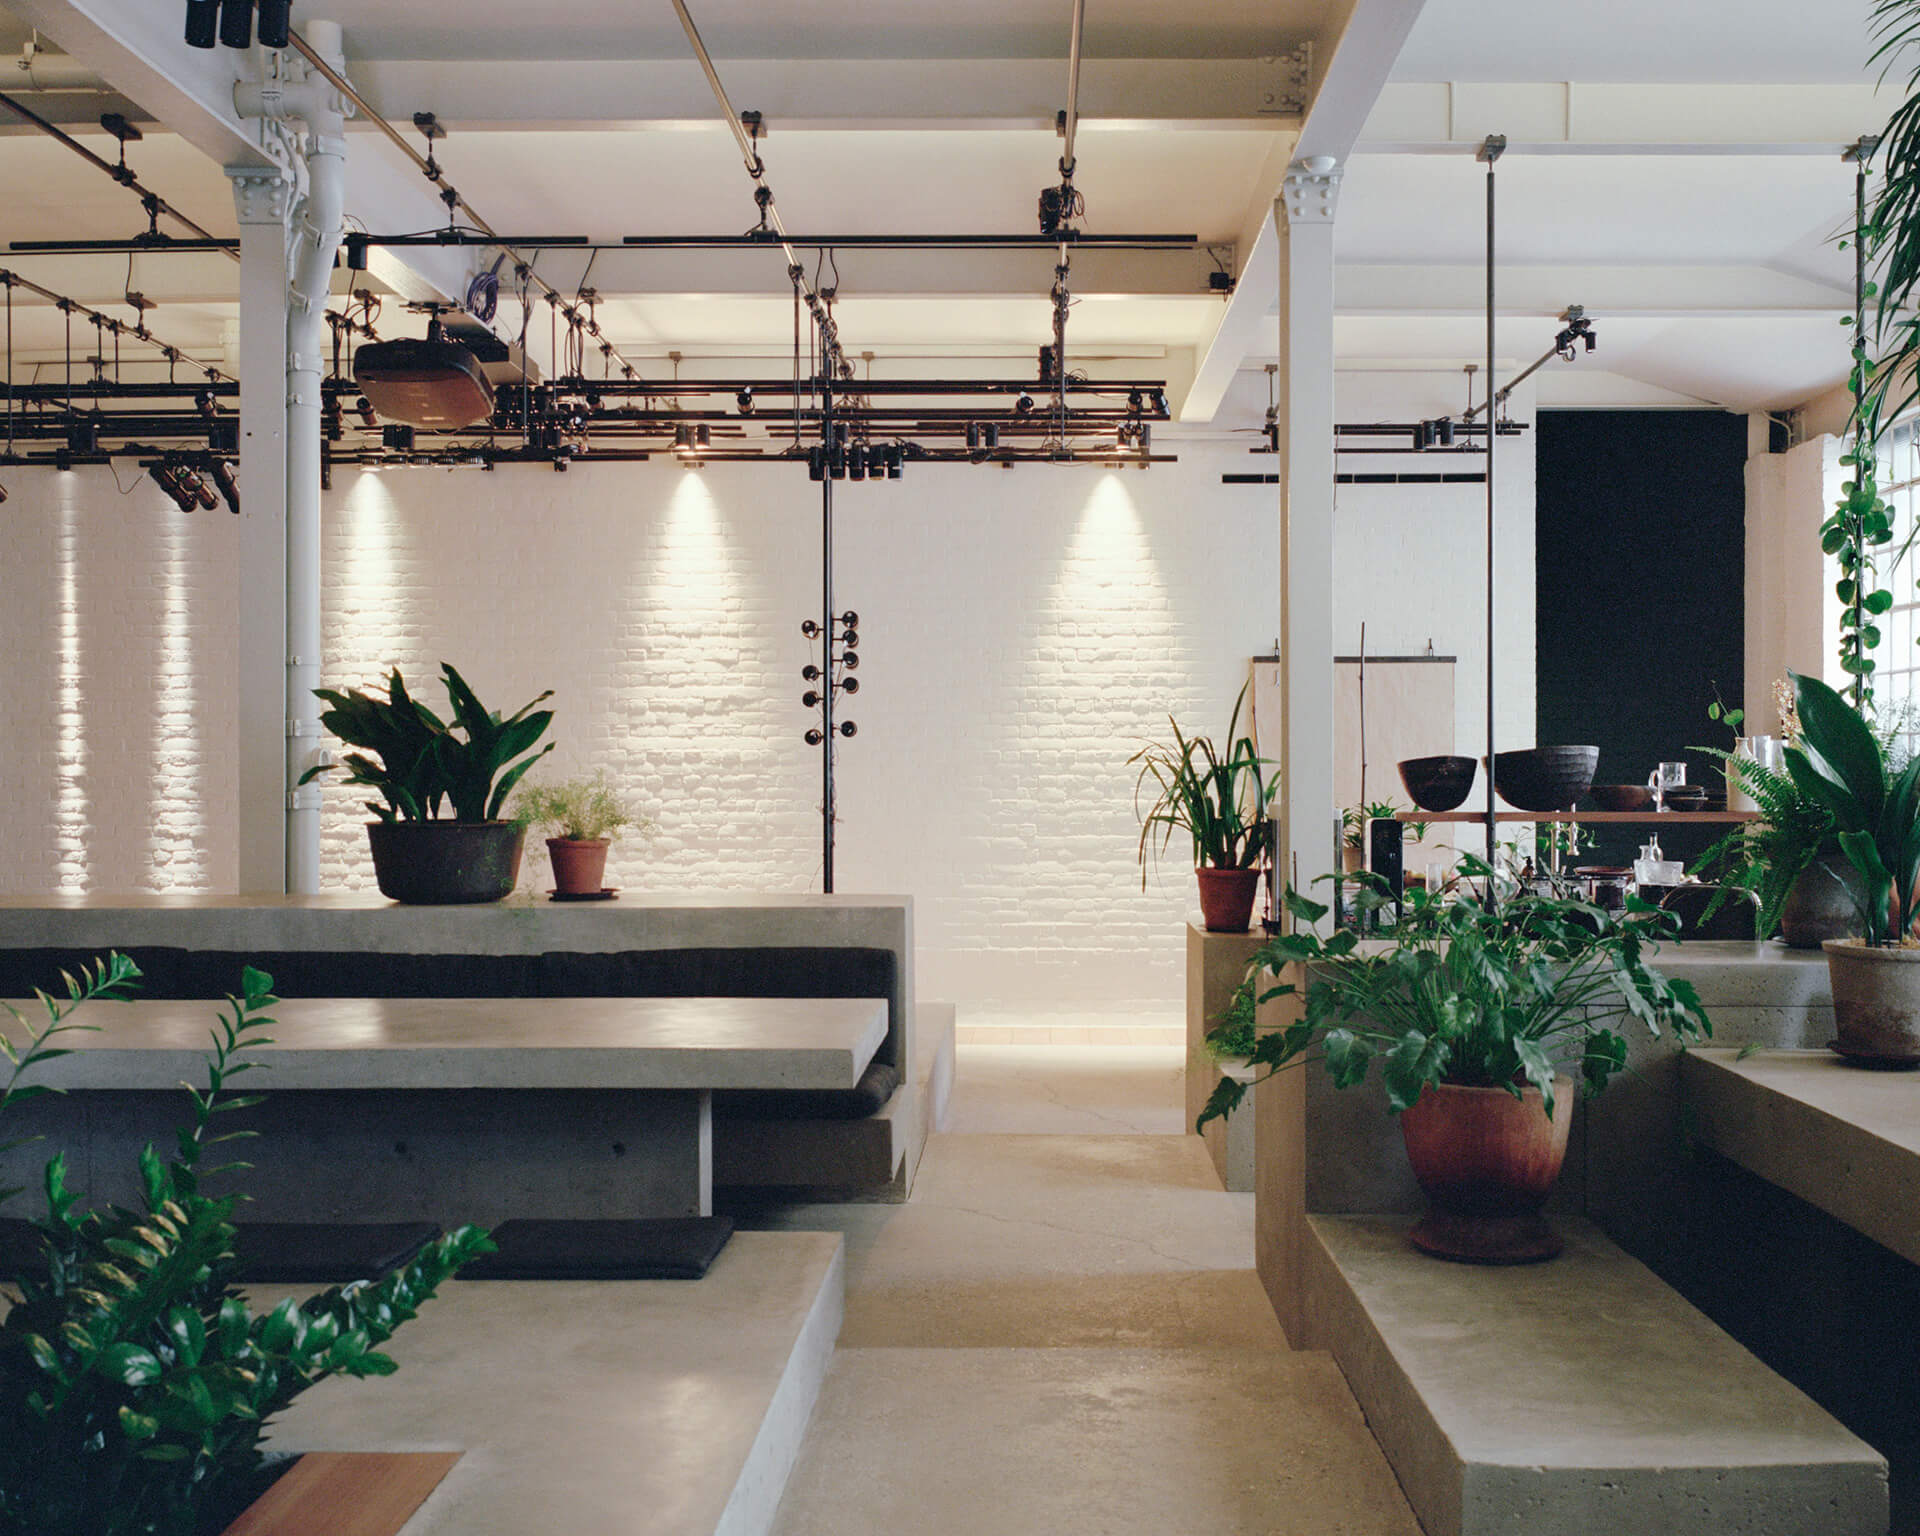 Shades of grey, plants and climbers contrast the largely white office | PSLab Headquarters designed by James Plumb | STIRworld